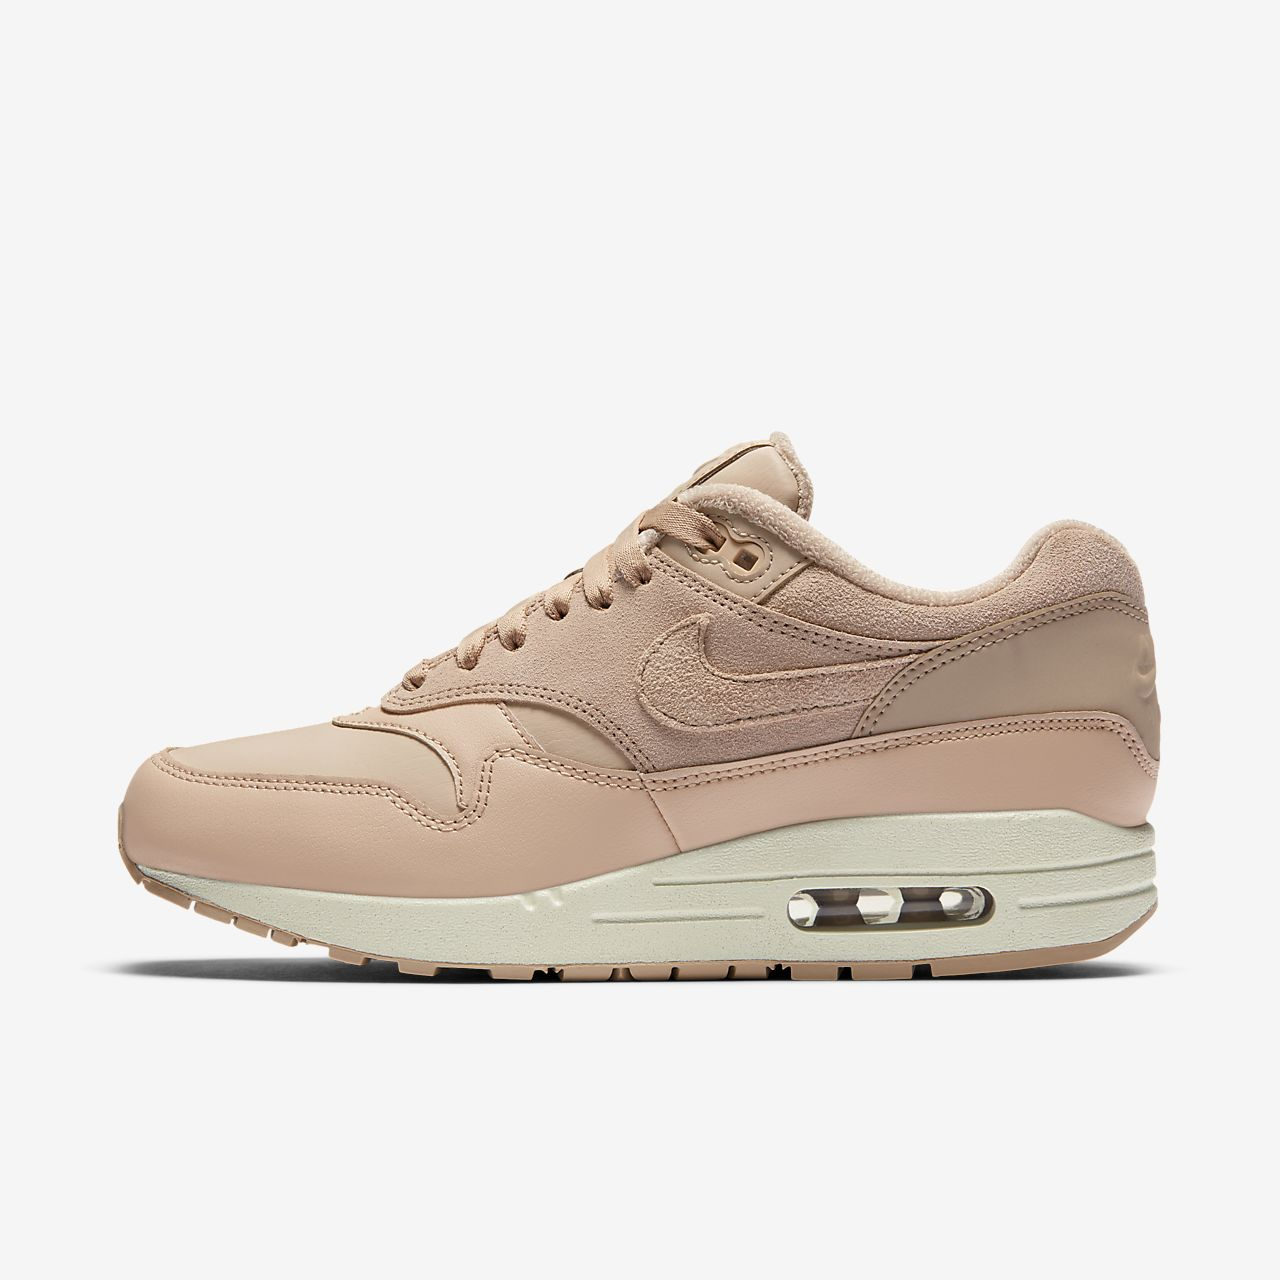 save off b4fb6 3744e Womens Shoe. Nike Air Max 1 Premium Winterized